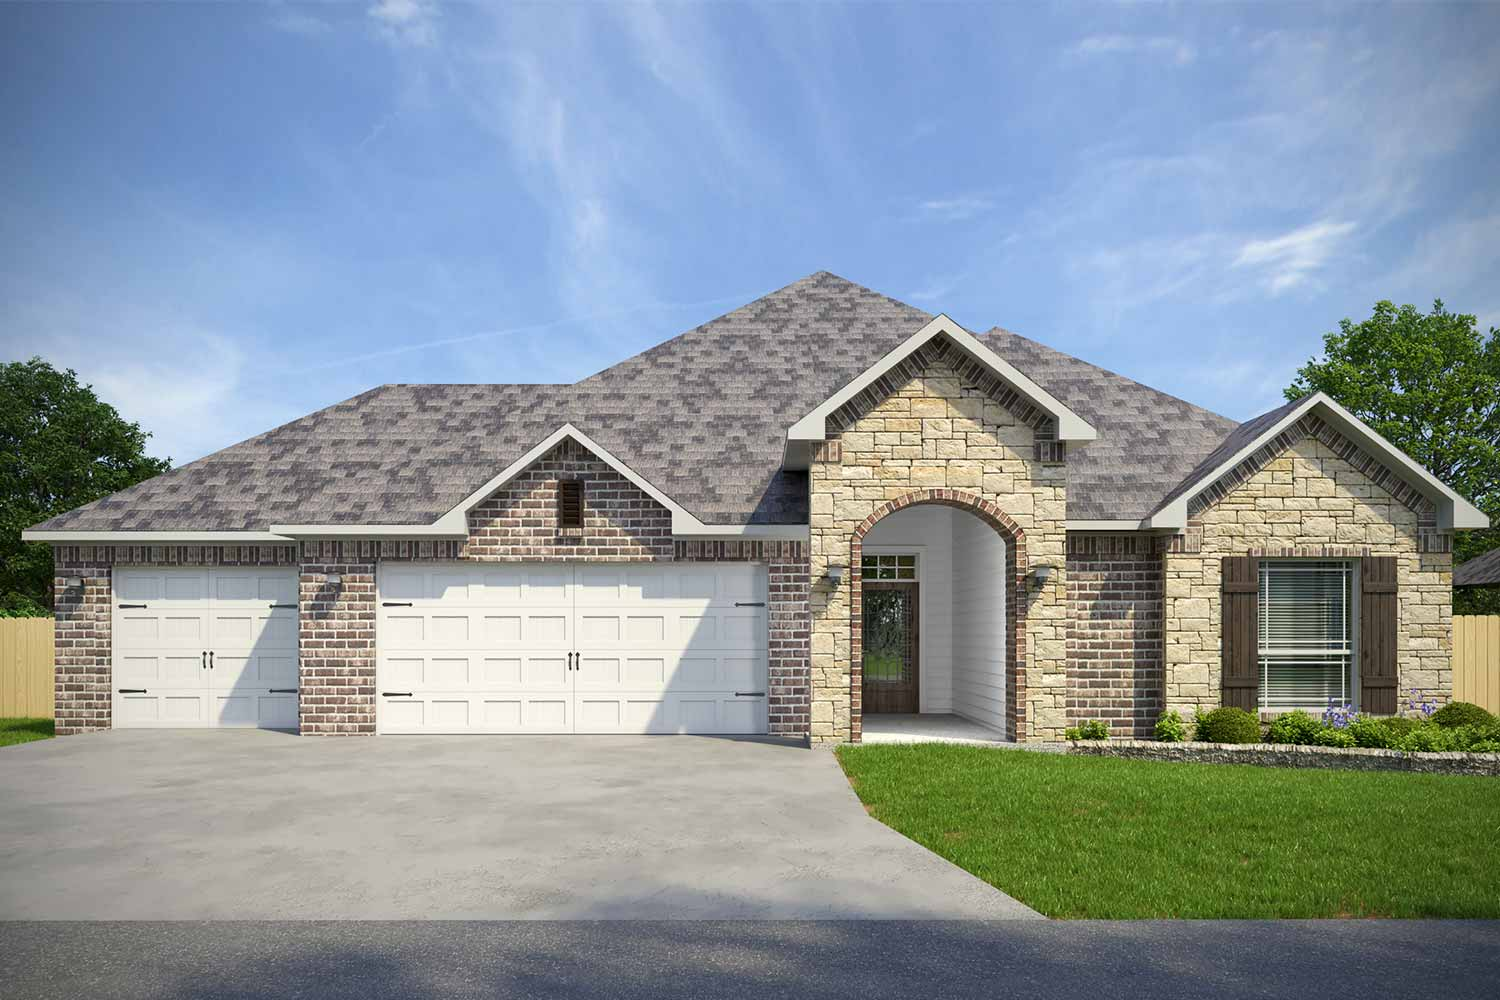 Homes for Sale in High Crest Belton, TX | 2785 Bowles Ranch Rd